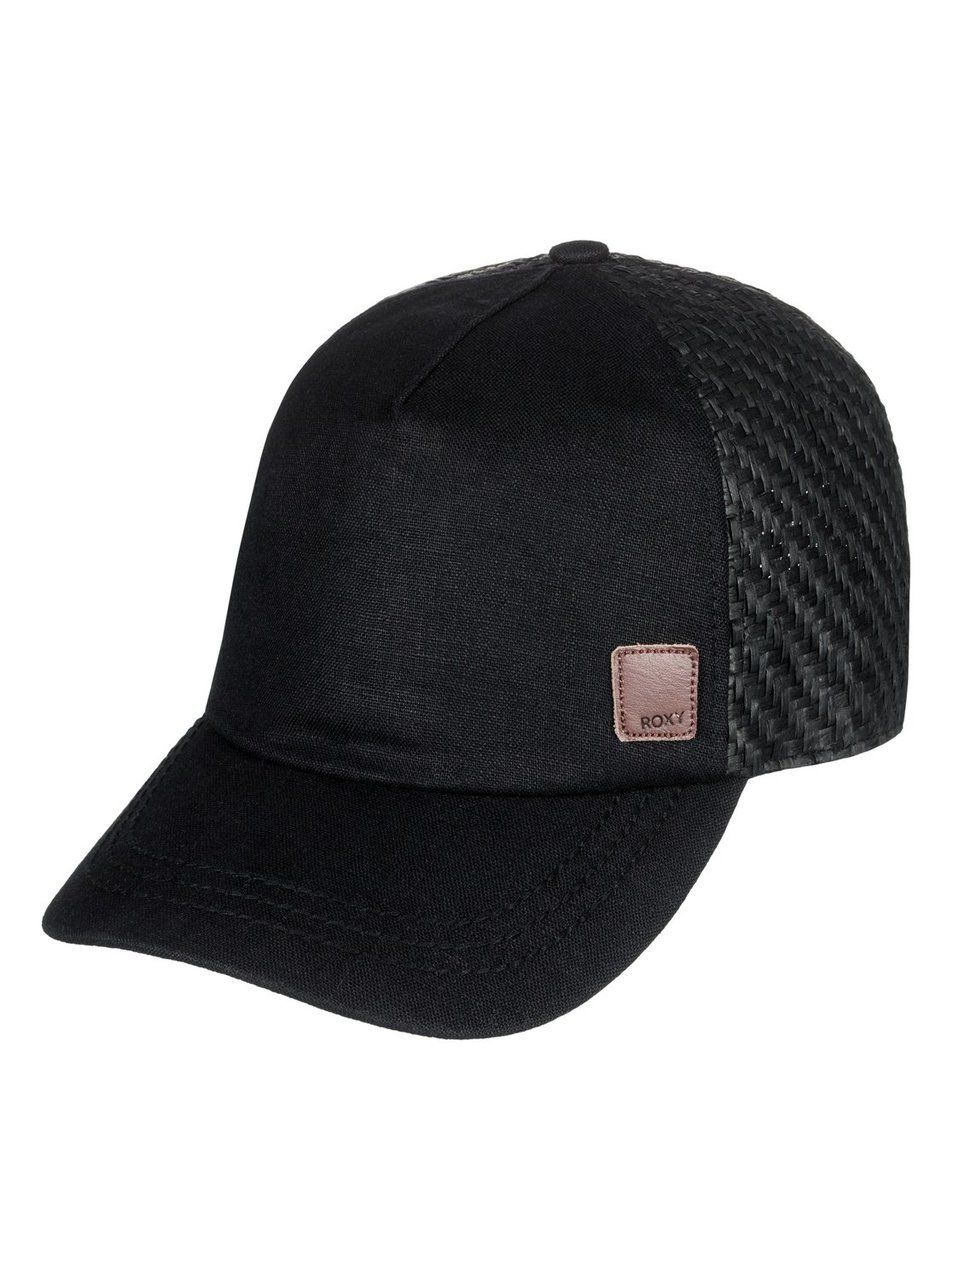 46dcdcb0a31c3 Roxy Women's Incognito Trucker Hat (Anthracite Black) -- 6 panel trucker  style hat with a curved visor and leather patch.